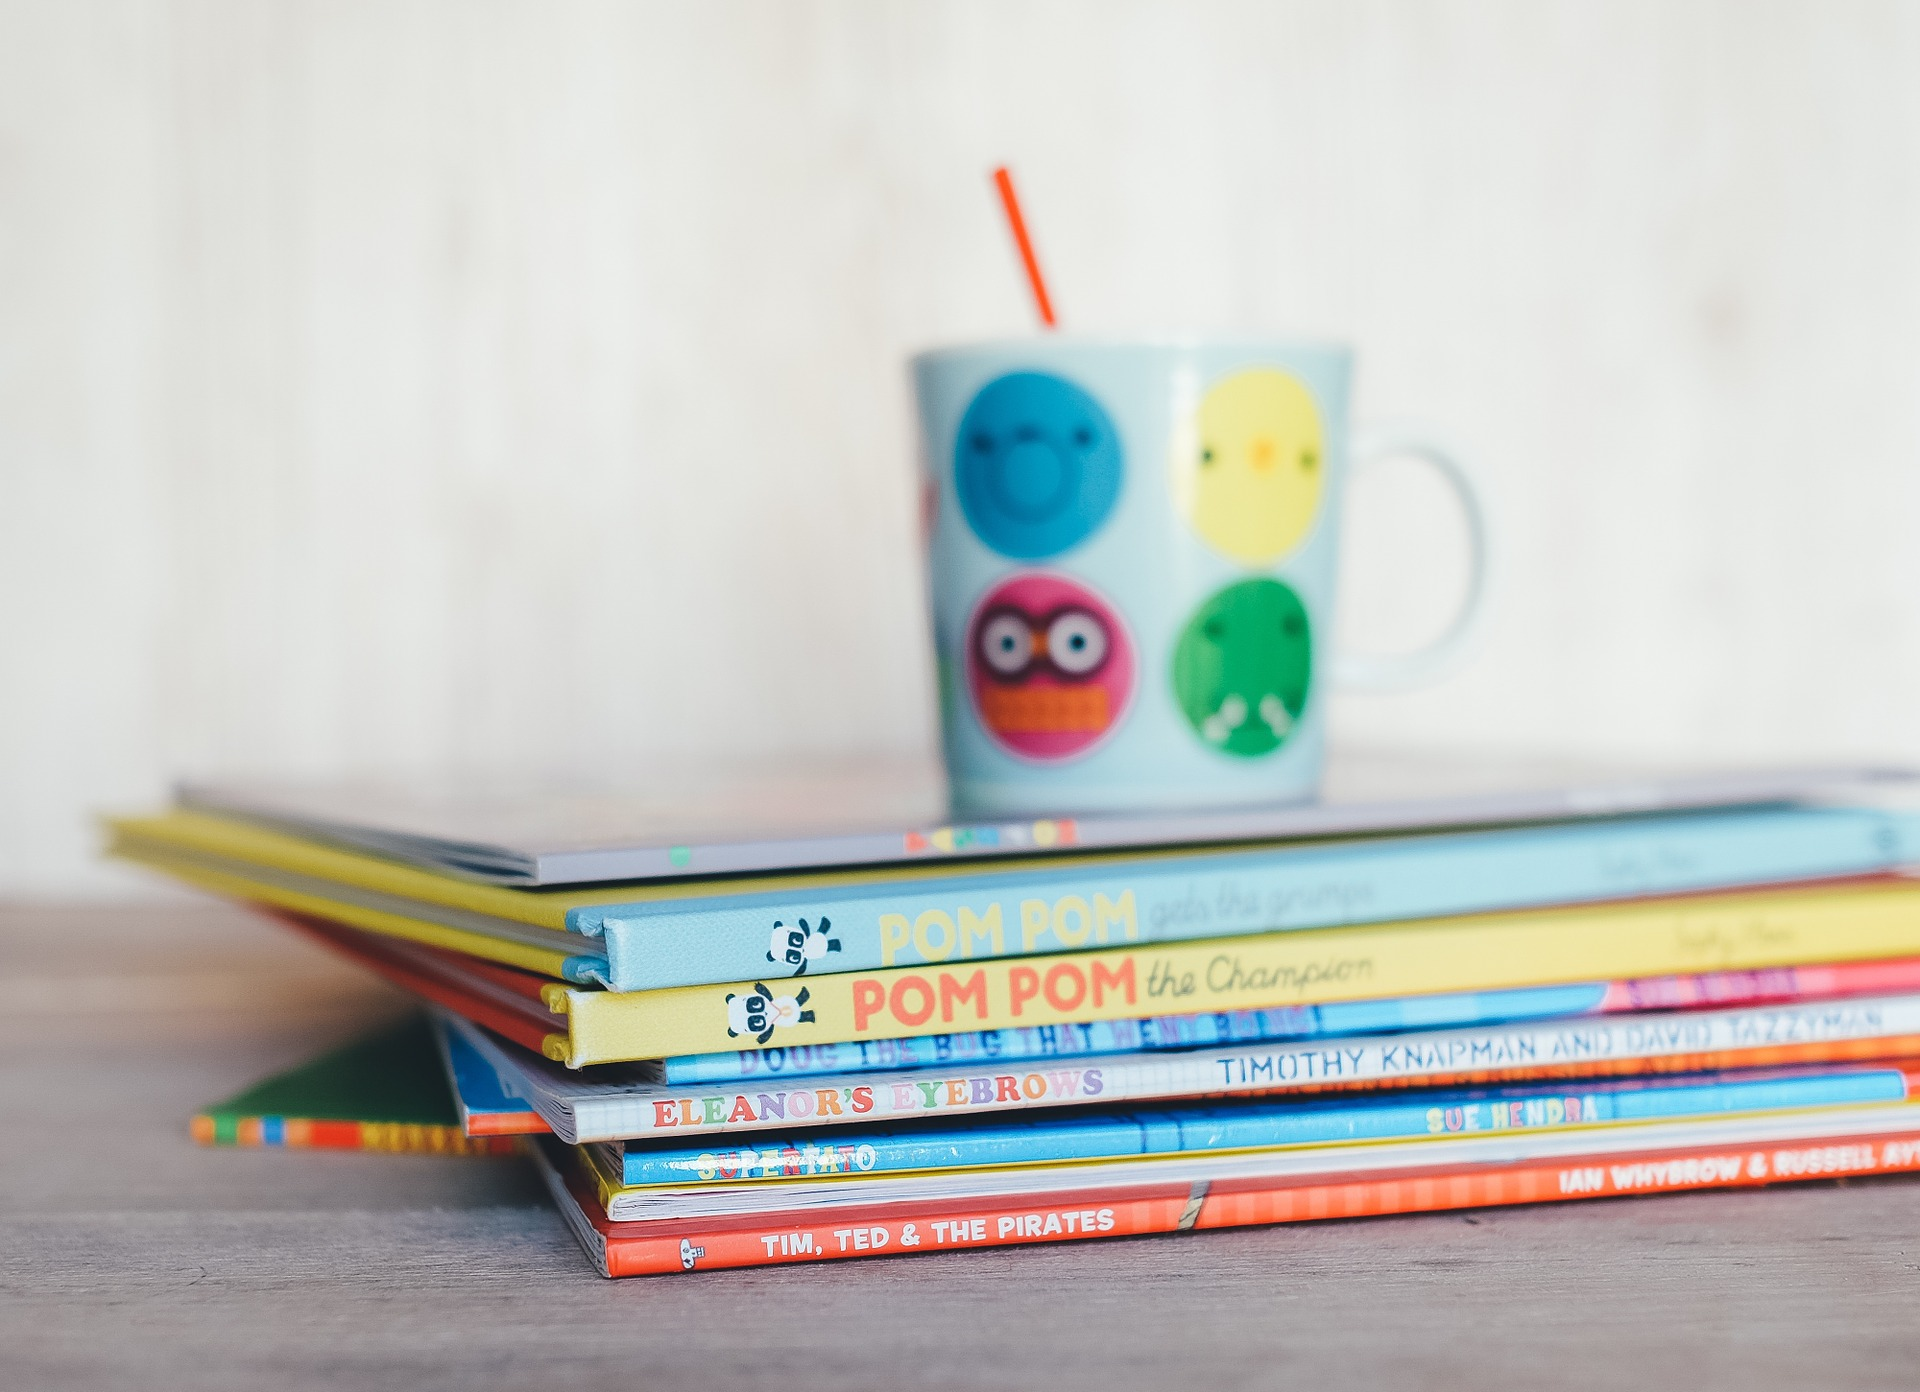 My Favorite Travel Books for Kids